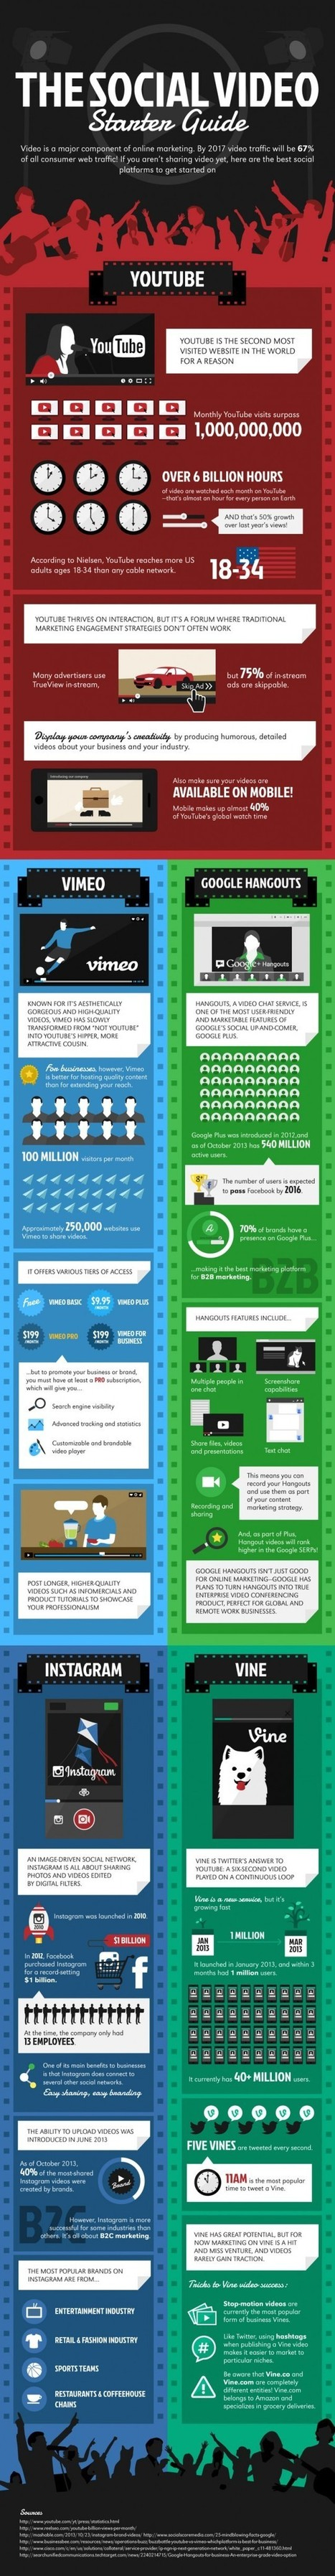 The Social Video Starter Guide: An #Infographic - Search Engine Journal | e-commerce & social media | Scoop.it